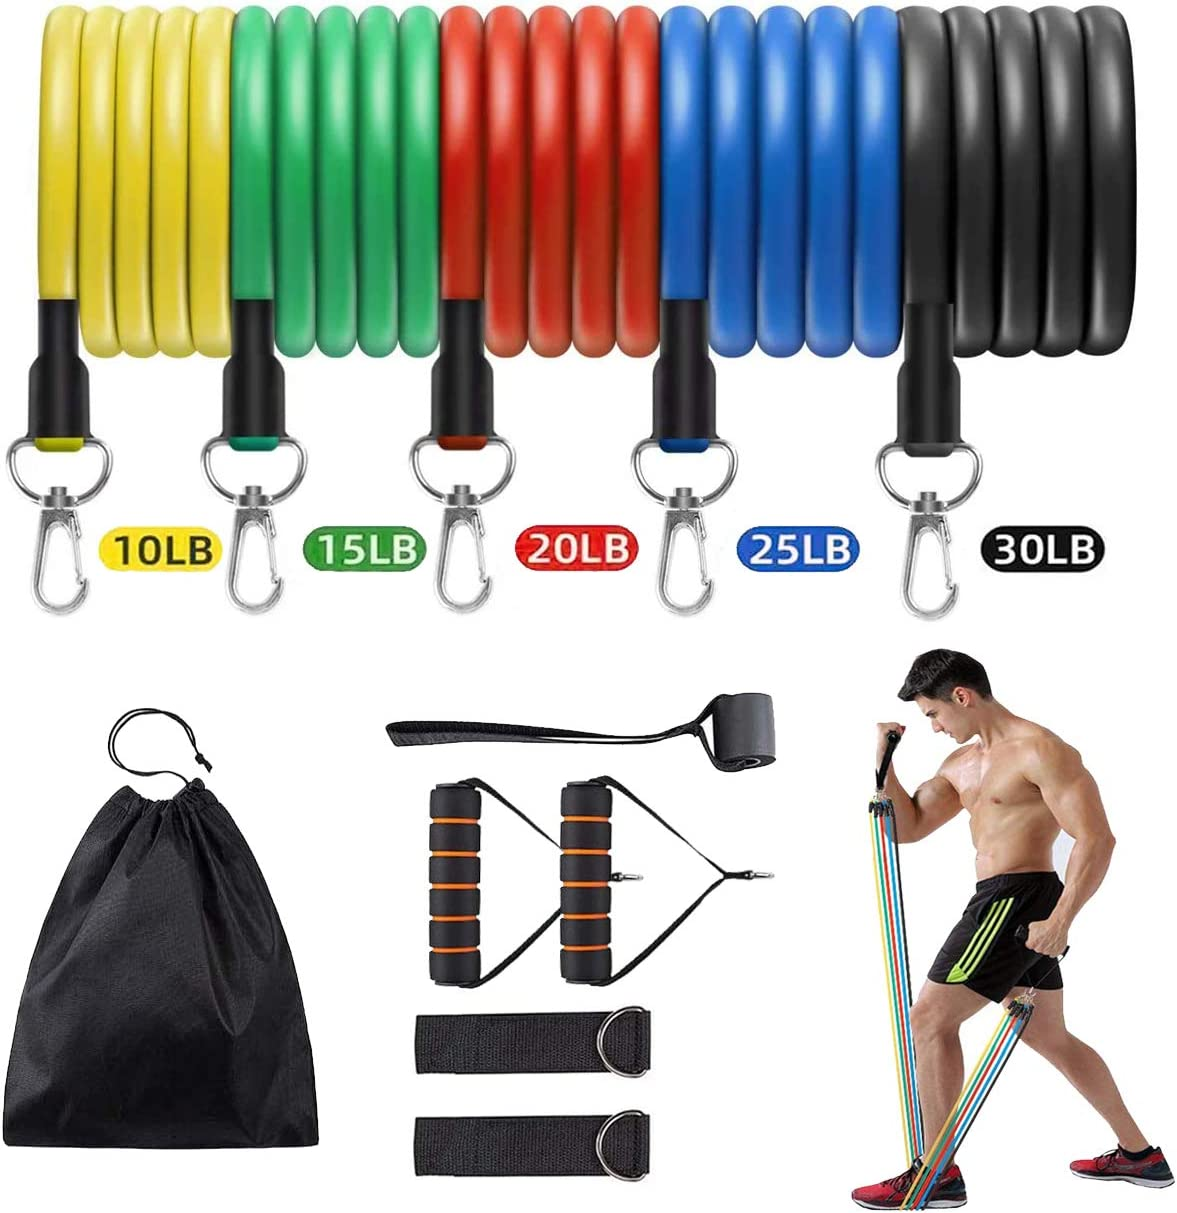 Resistance Bands Set 5-piece Exercise Bands With Handles Door Anchor Workout Bands Workout Bands Elastic Bands For Exercise Fitness Bands For Working Out Bodylastics Heavy Duty Resistant Bands For Men